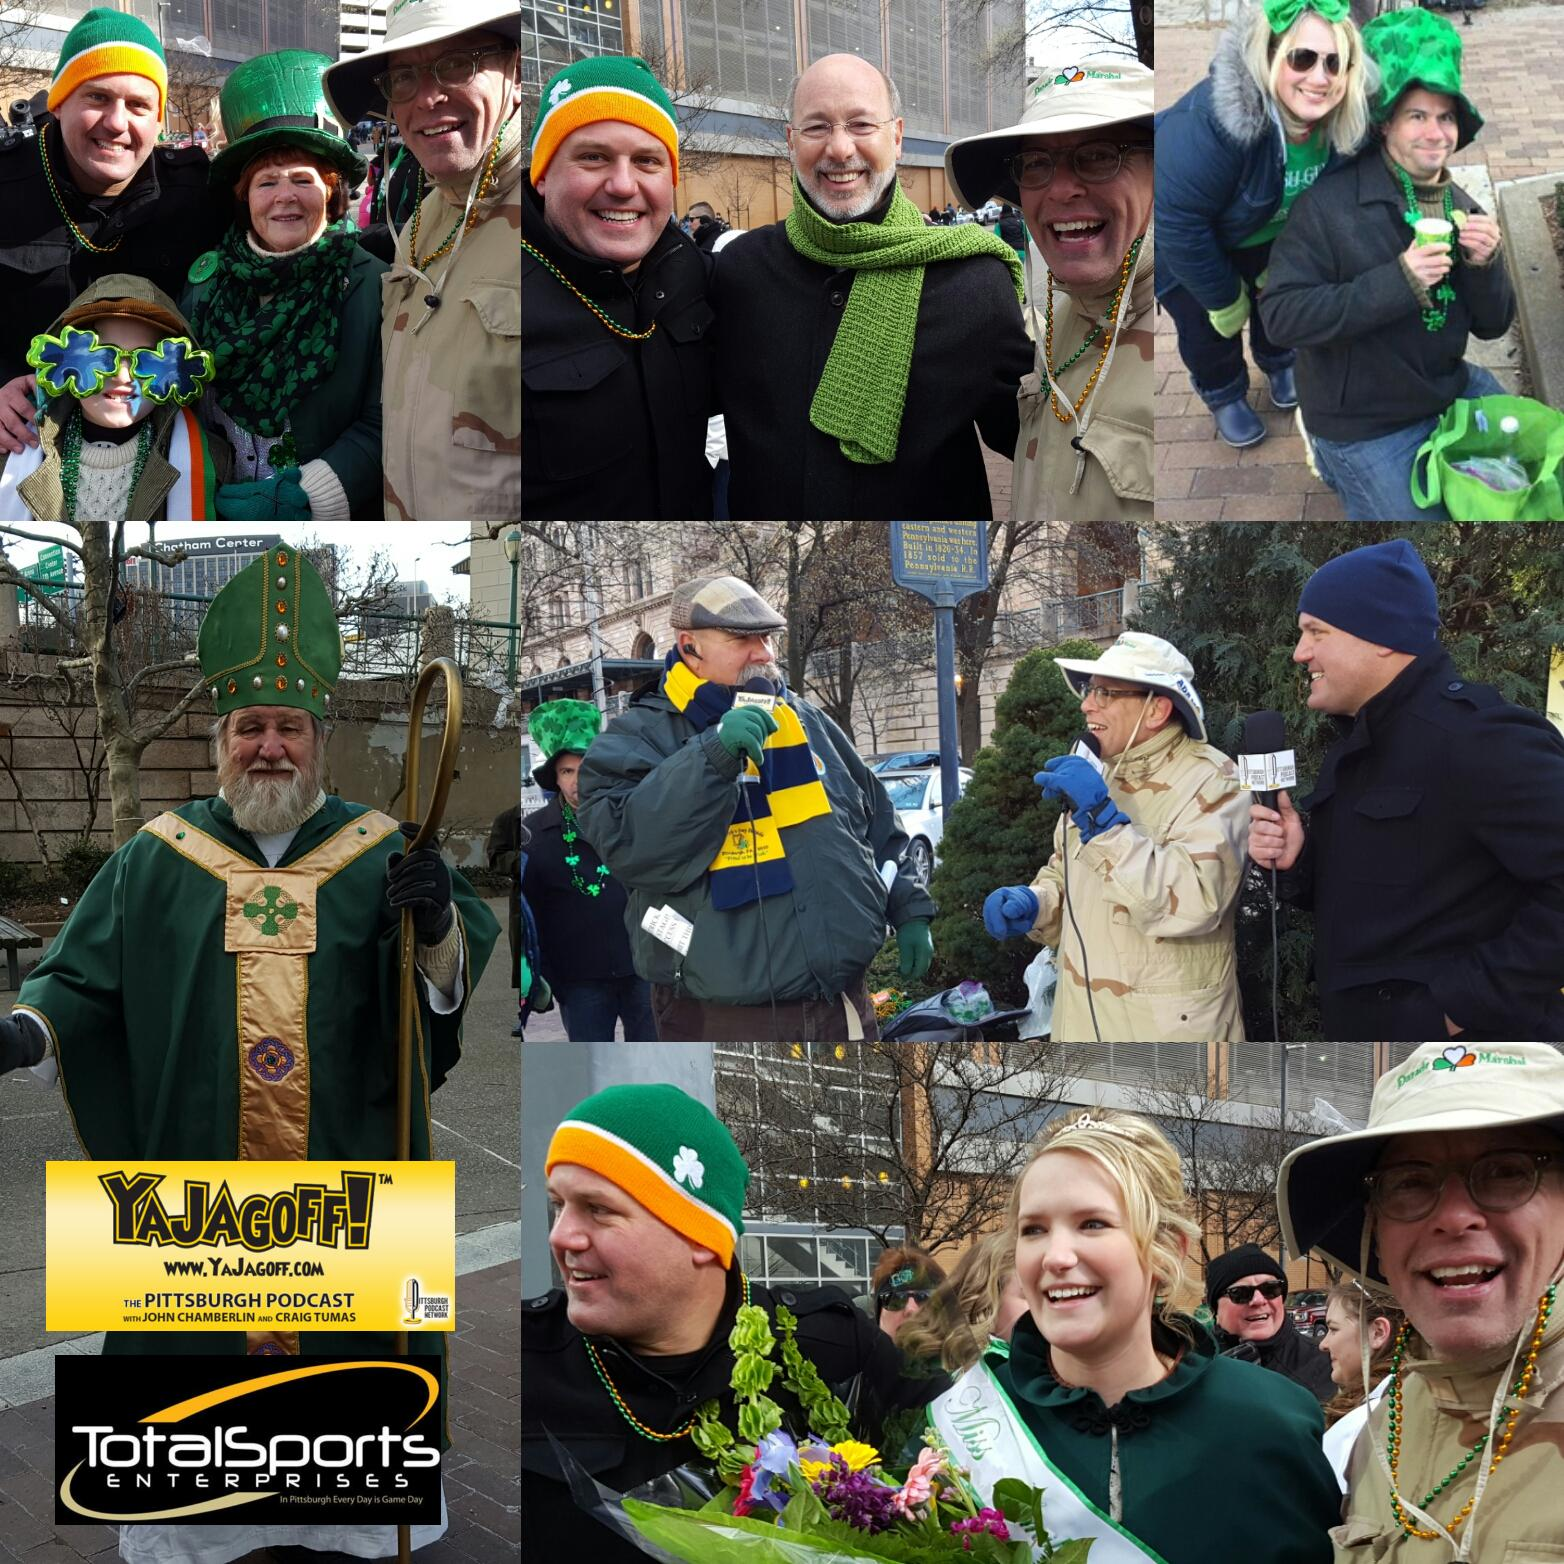 YaJagoff Podcast, Episode 61, From The St. Patrick's Day Parade